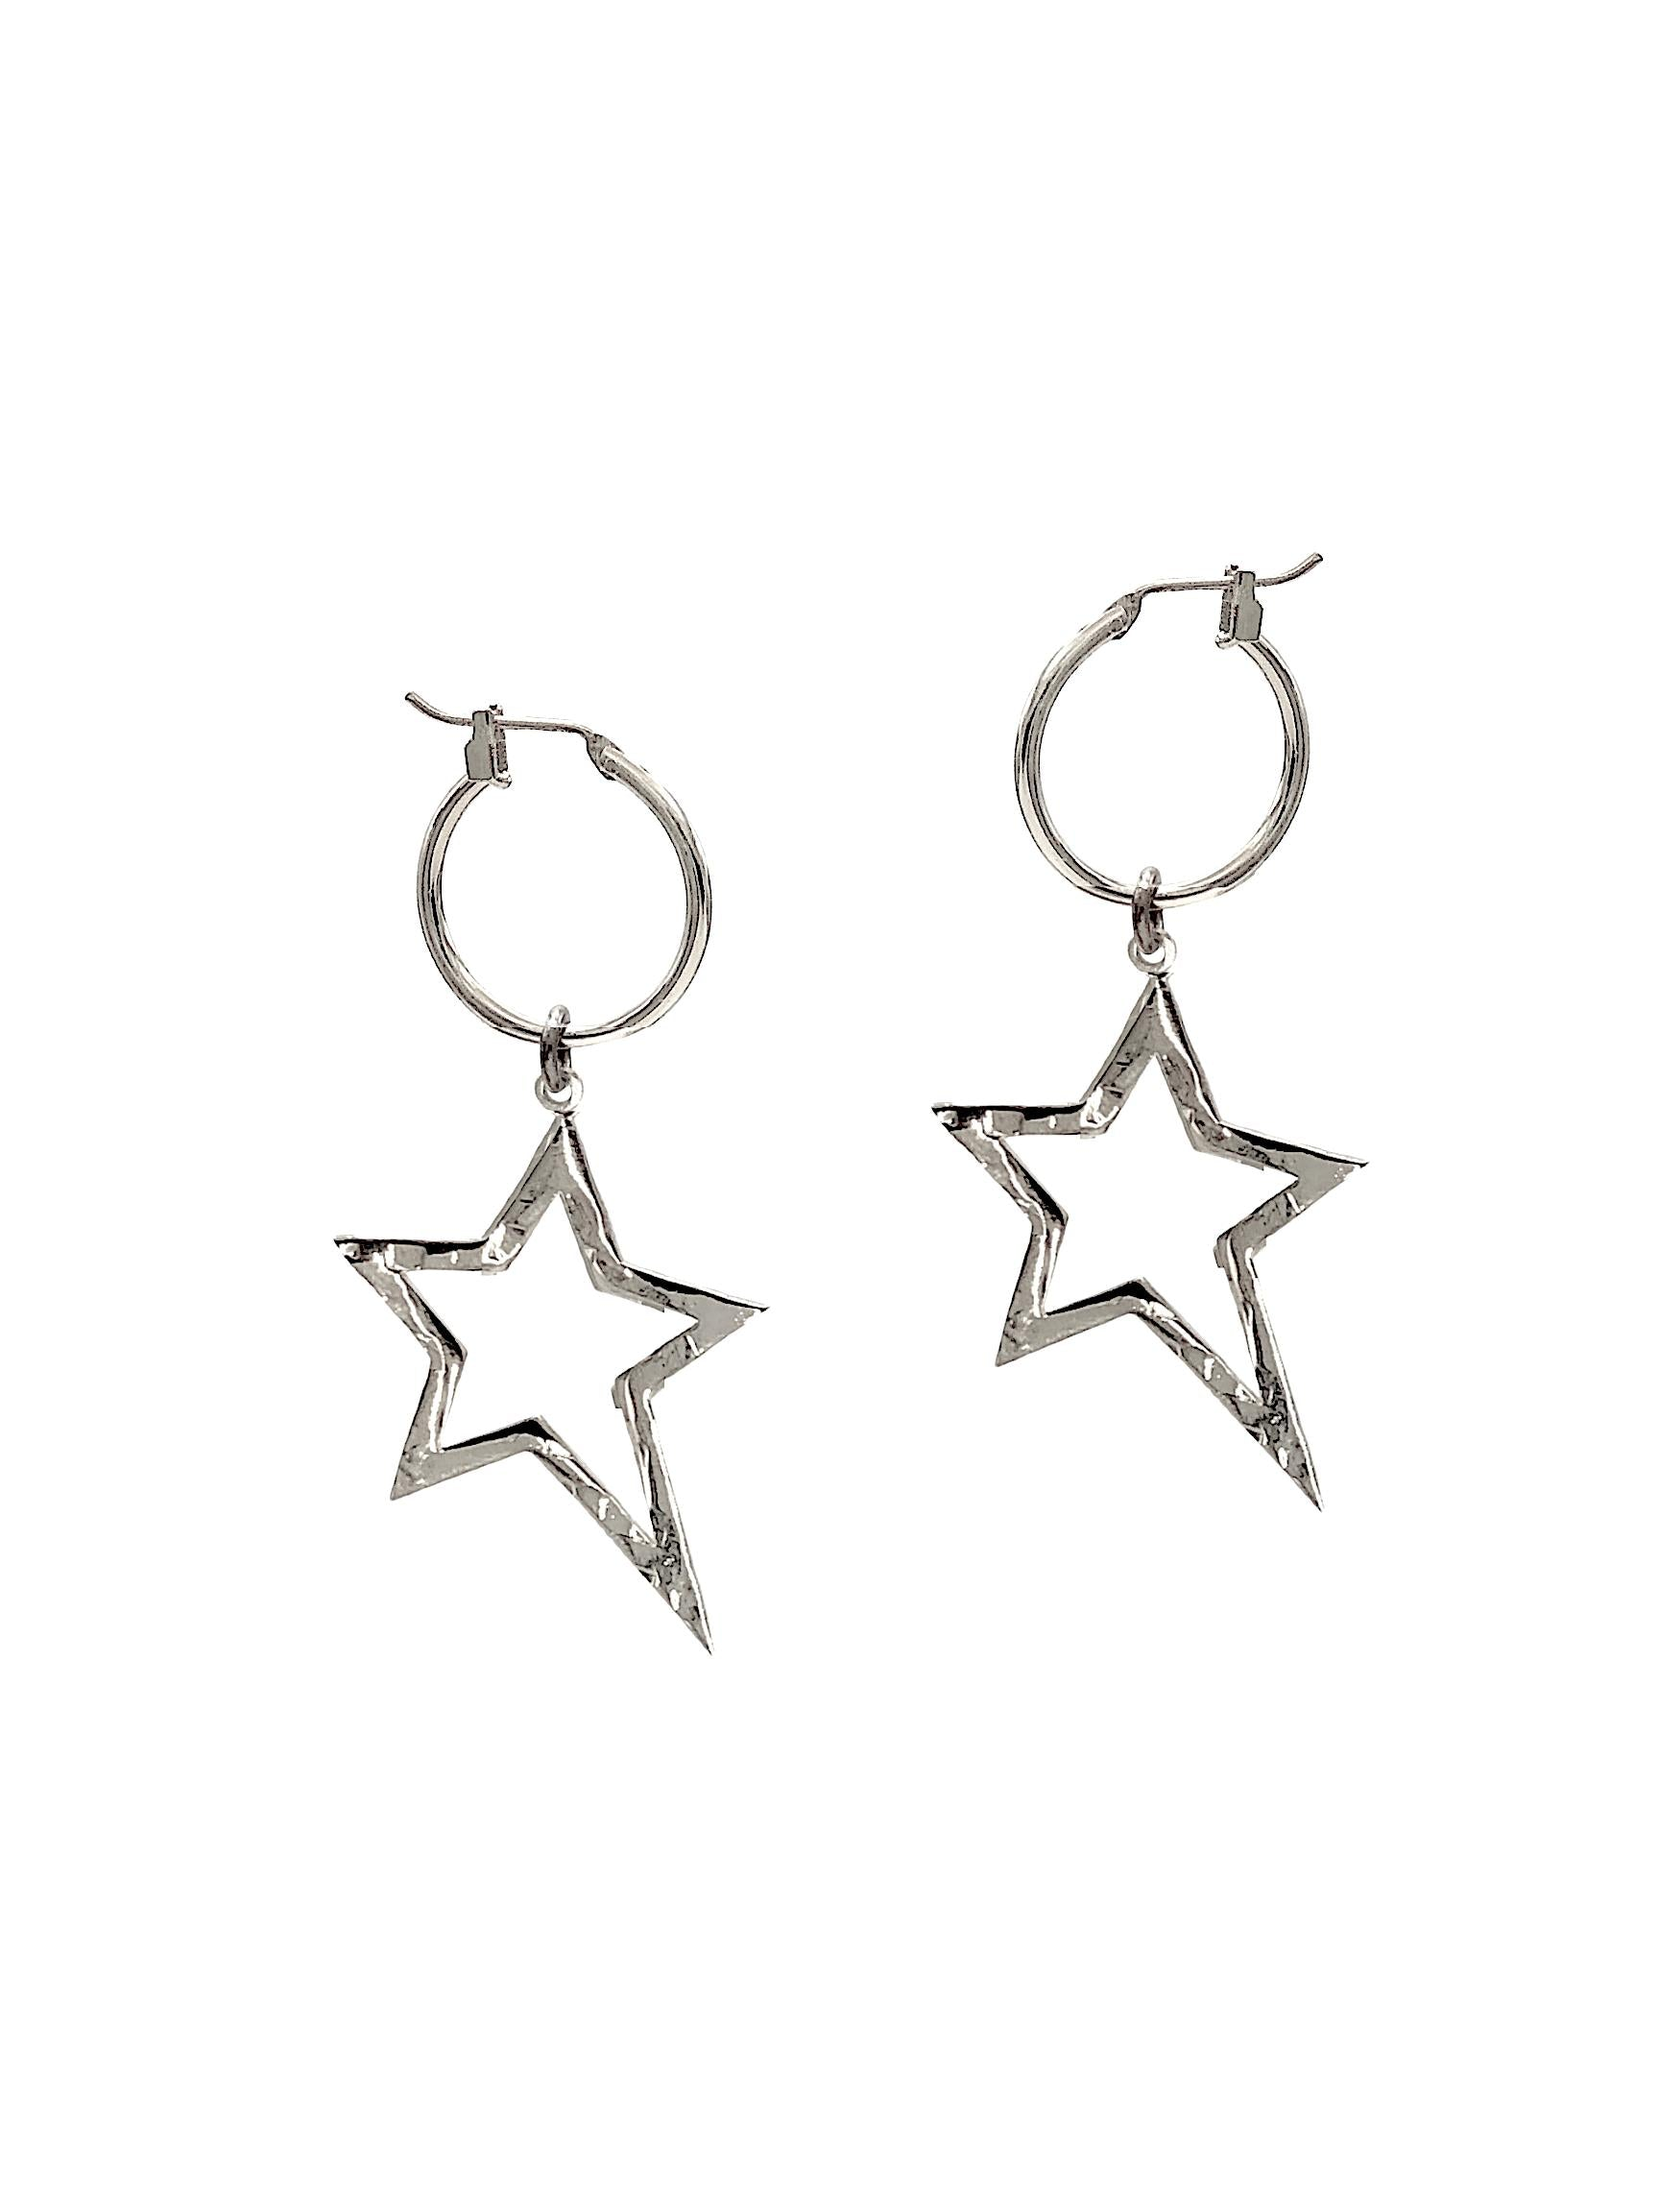 Silver Shooting Star Dust Earring Charms-Womens Charms for Earrings-JAREDJAMIN Jewelry Online-JAREDJAMIN - Fashion Jewelry & Accessories